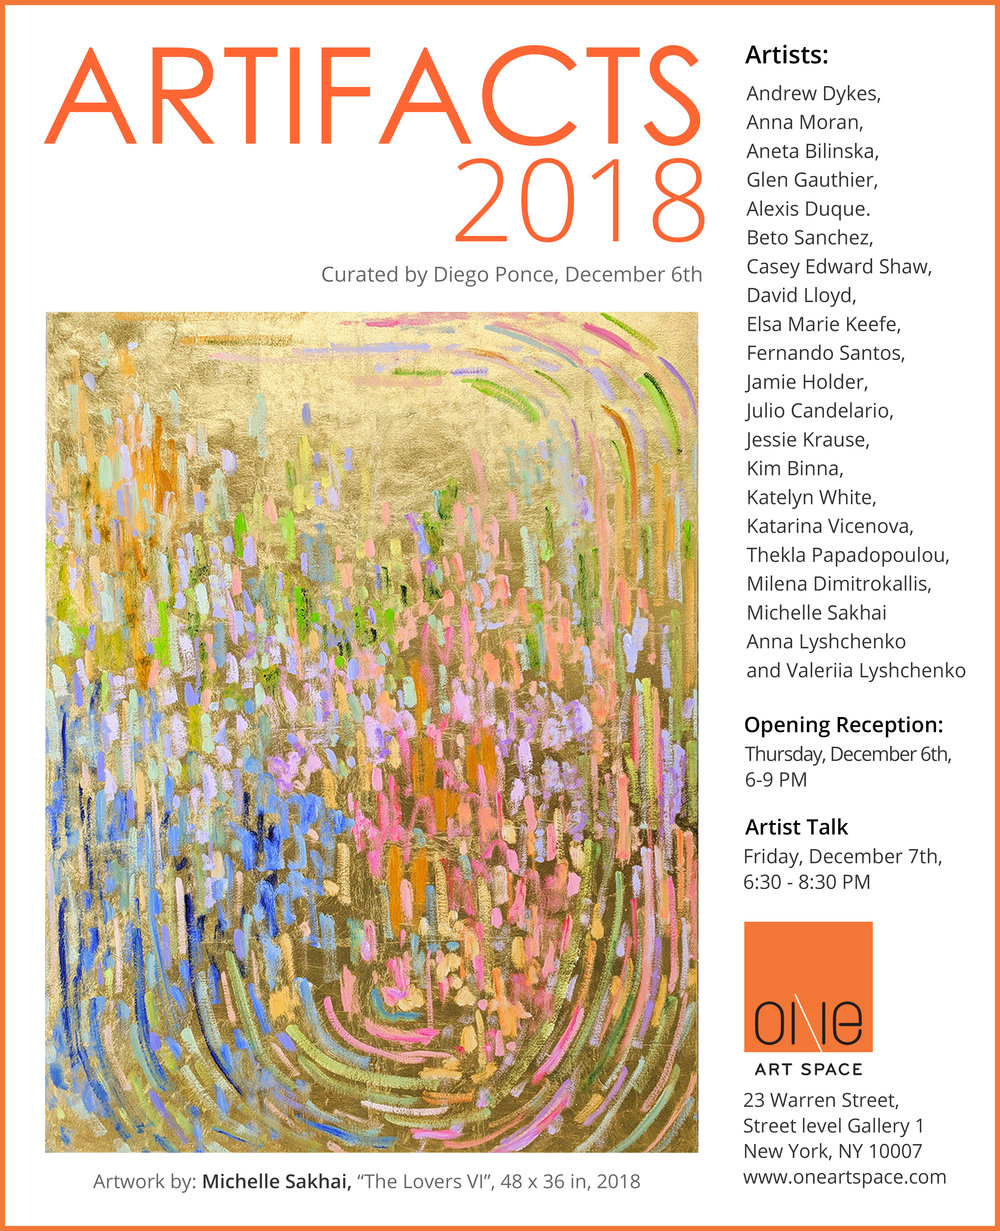 ARTIFACTS - A group show with artists linked by their interest in the ephemera and residue created by the movement of human life and history, and the need to use art as a tool and a process and to understand our present world.December 6 - 11, 2018One Art Space23 Warren Street - Gallery 1, New York NY 10007Opening reception Thursday December 6th, 6-9 PM